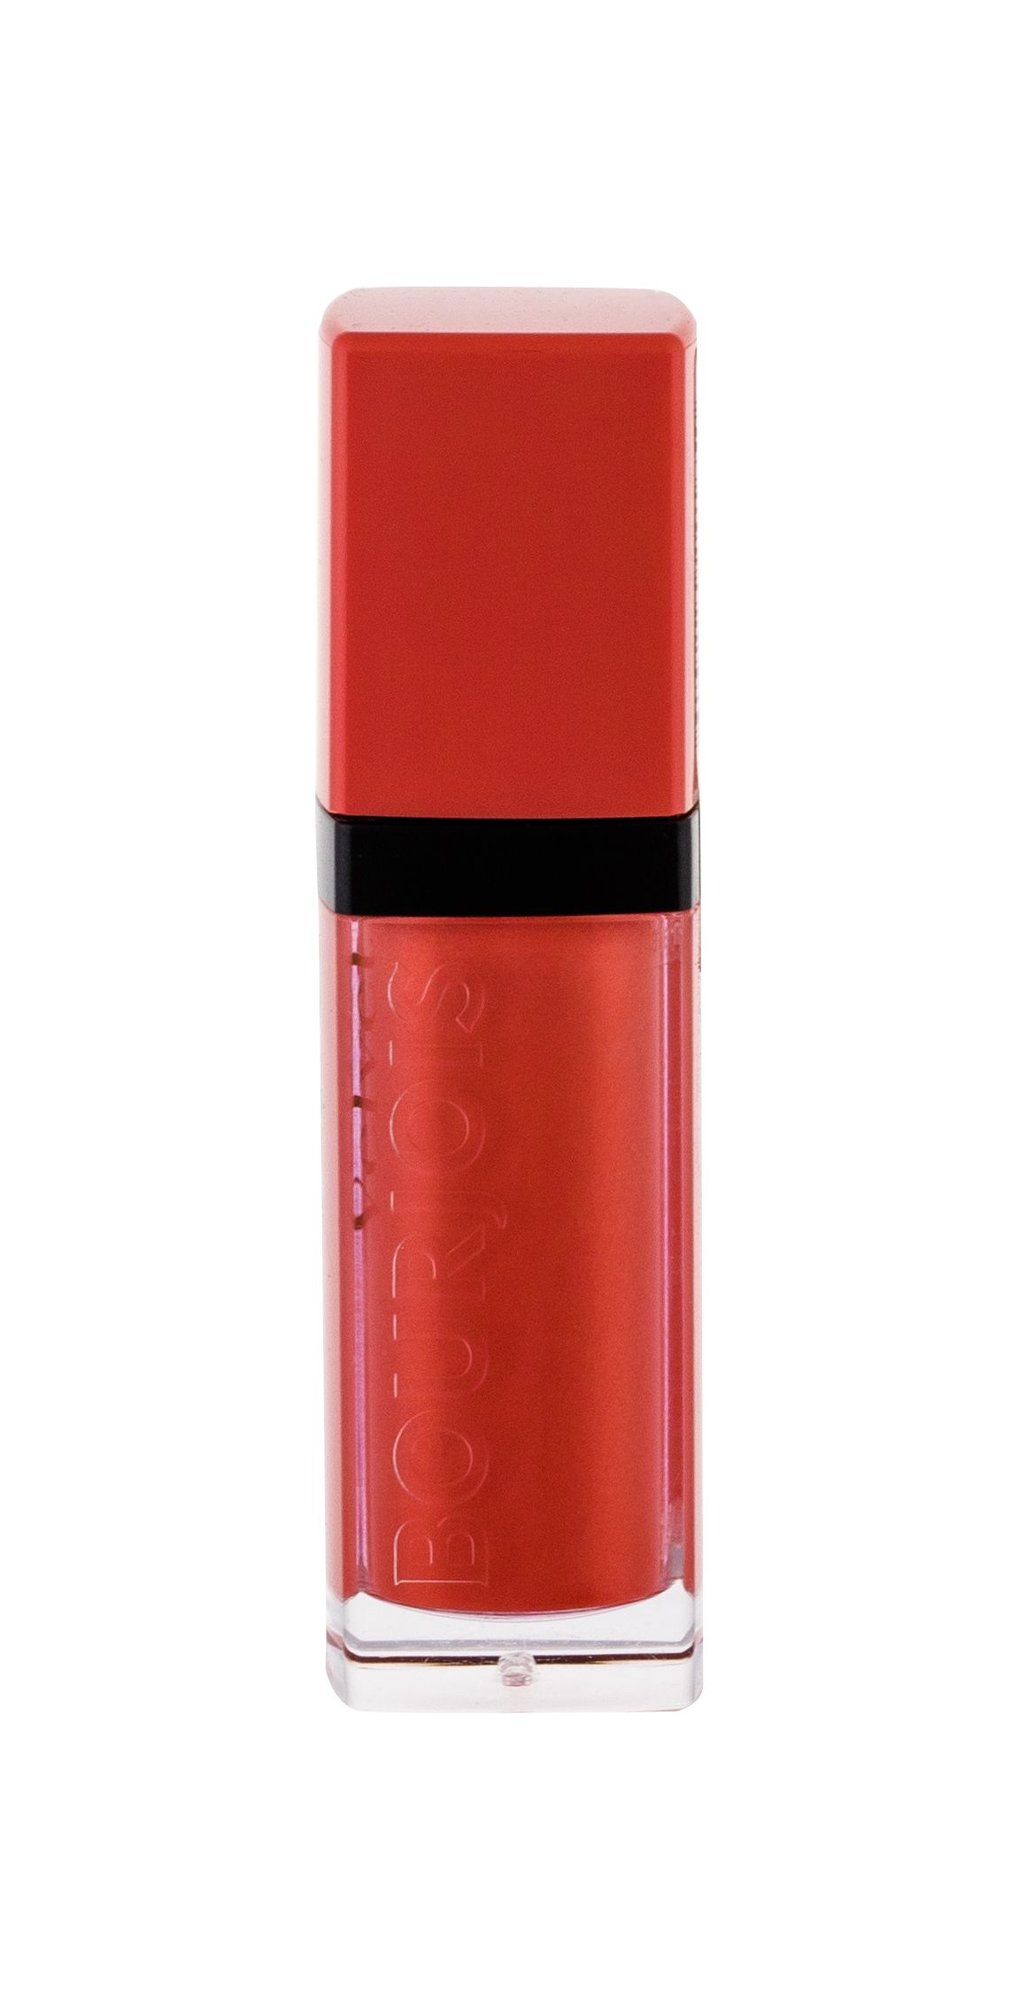 BOURJOIS Paris Rouge Edition Lipstick 7,7ml 022 Abricoquette